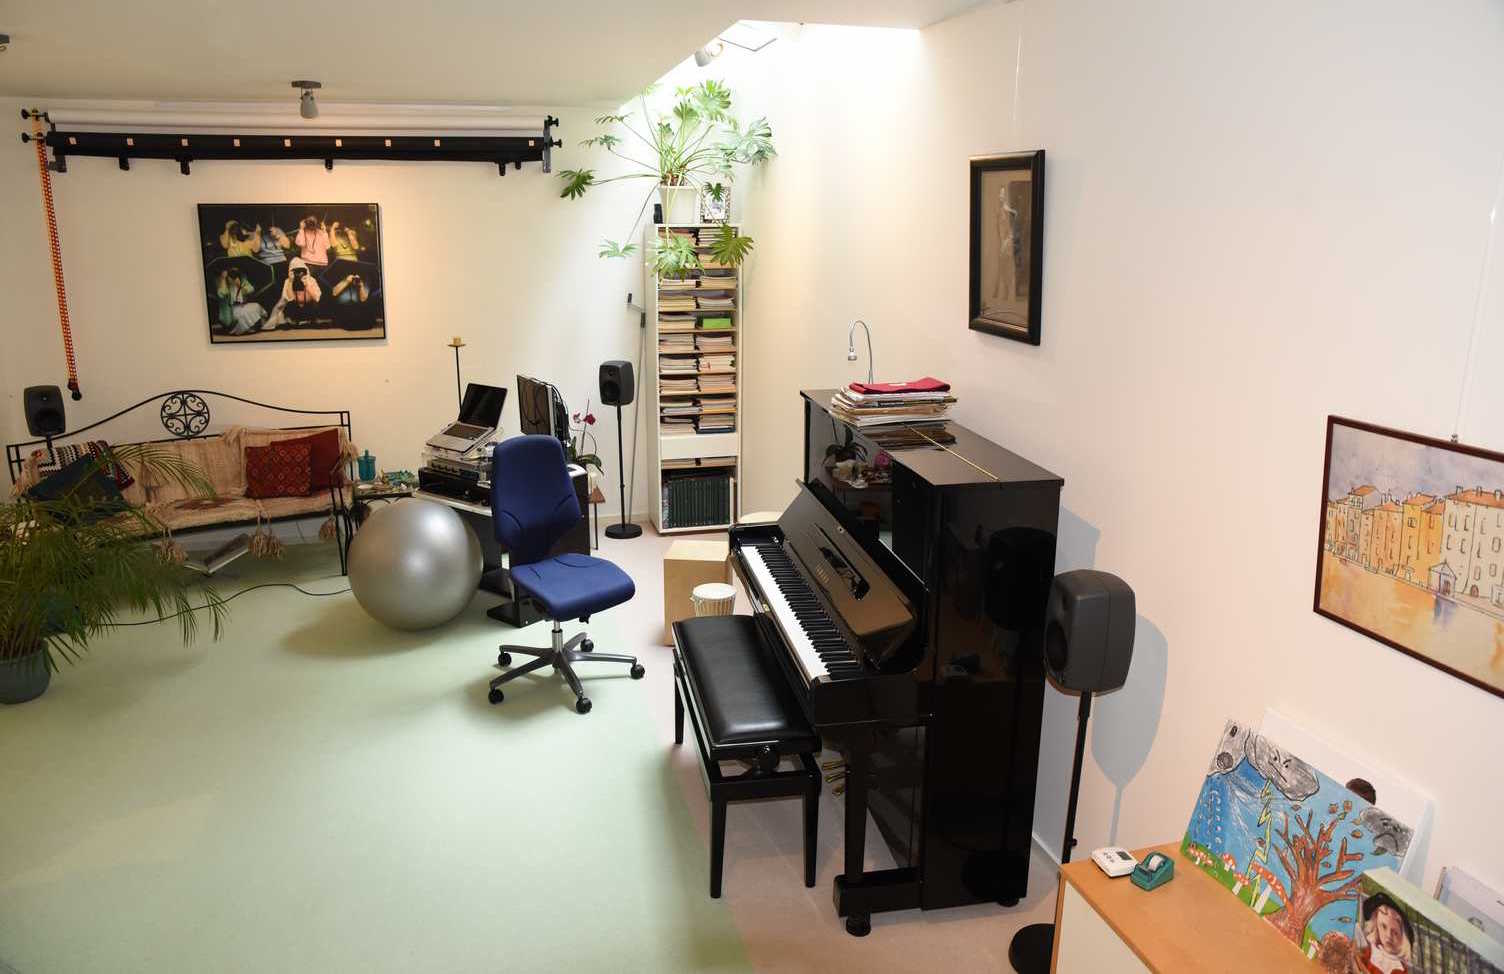 Hands-on Piano les studio in Alteveer, Arnhem.